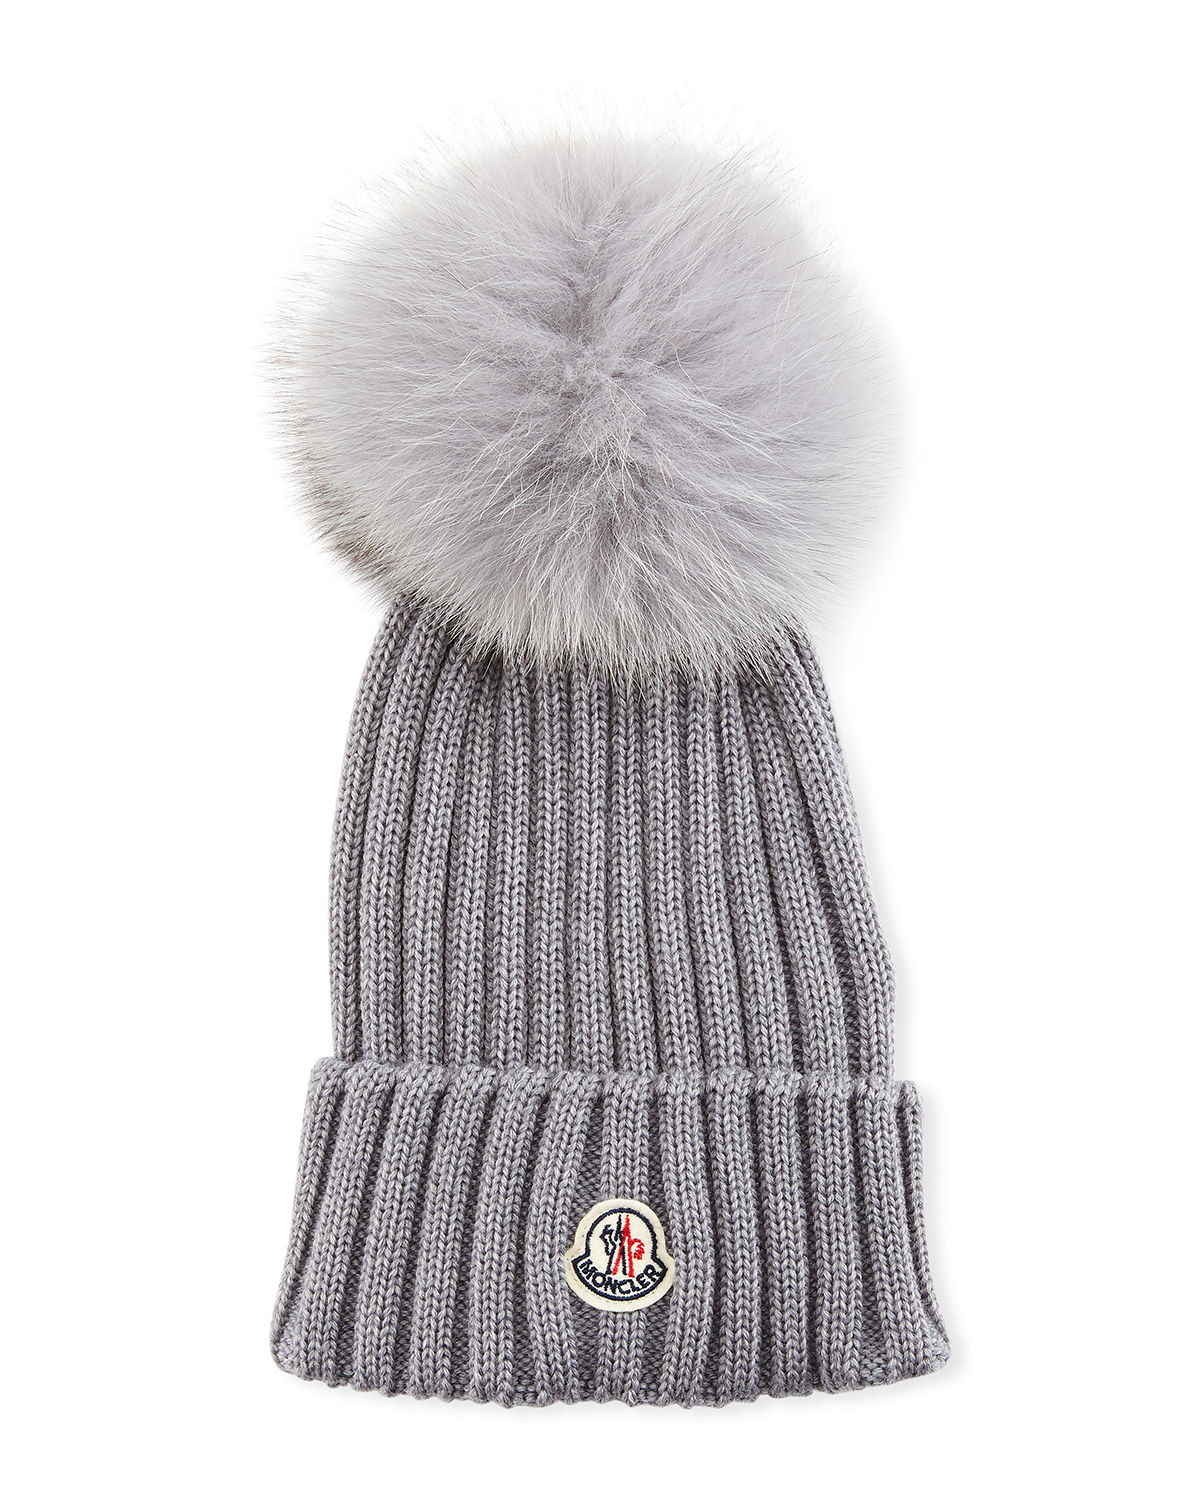 936ad67de86 Moncler Ribbed-Knit Beanie Hat W Fur Pompom In Charcoal